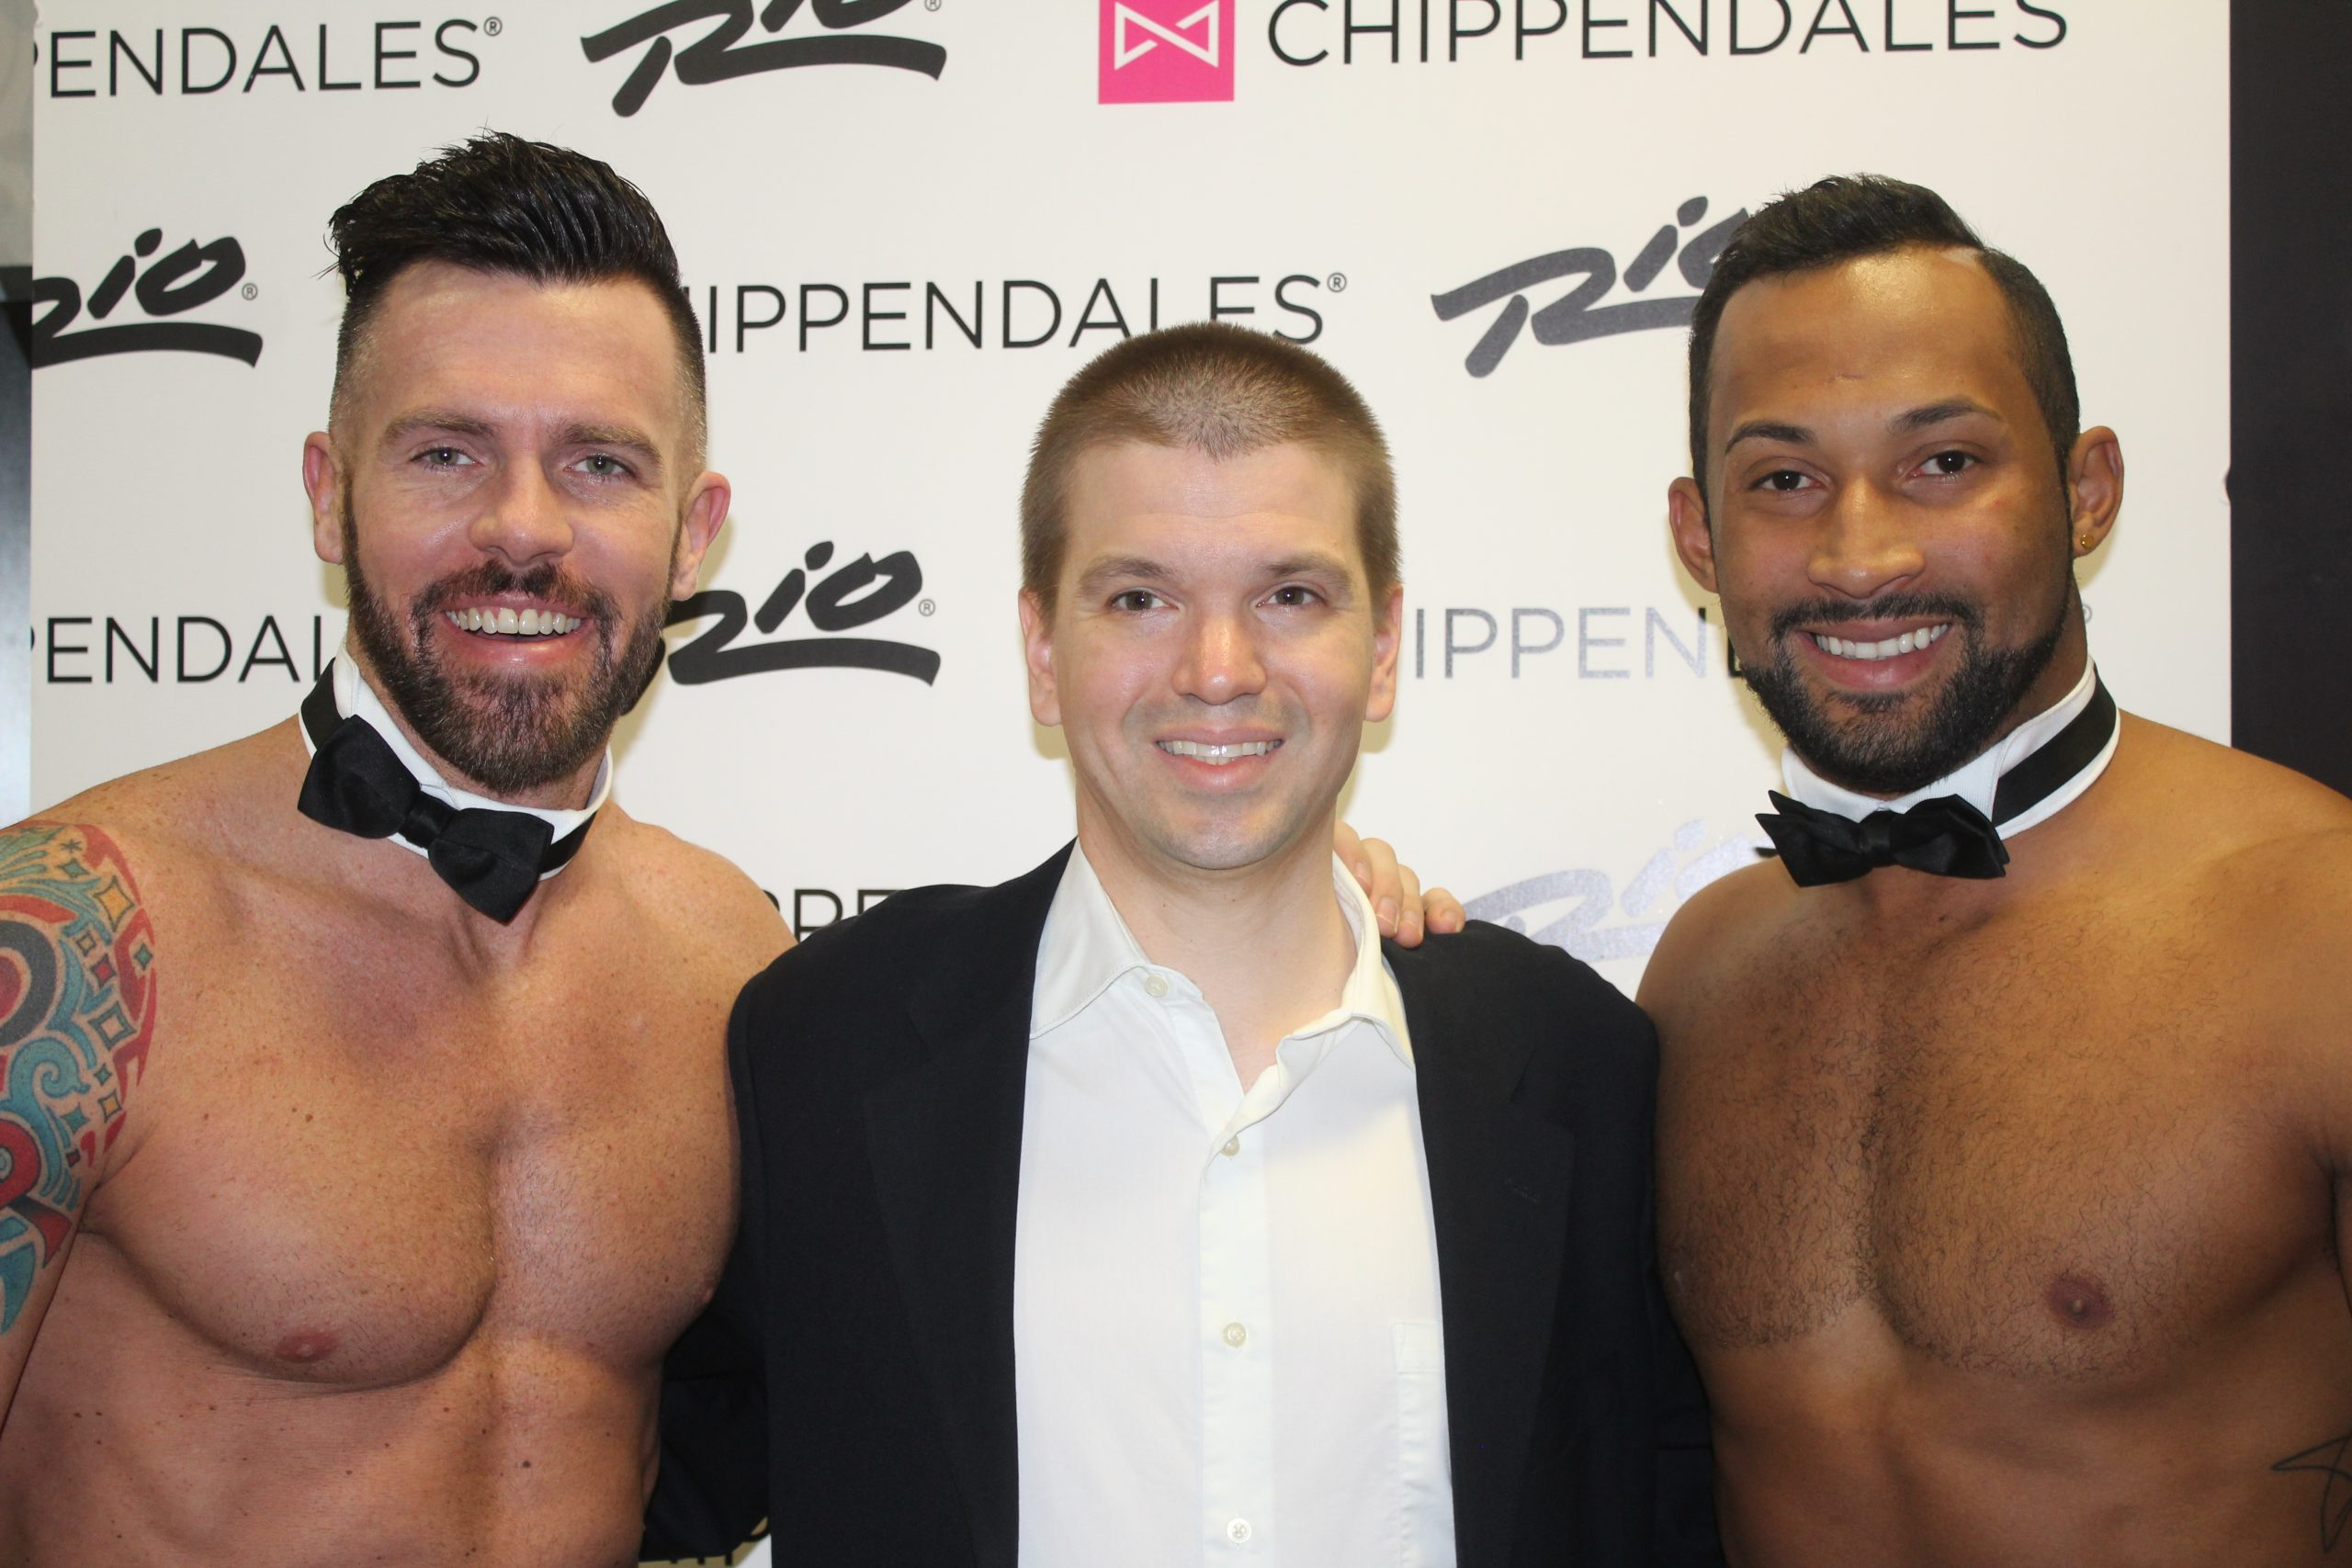 Jayson Michael Chippendales,  Ryan Kelsey Chippendales, Chippendales 2019, Jayson Michael, Ryan Kelsey